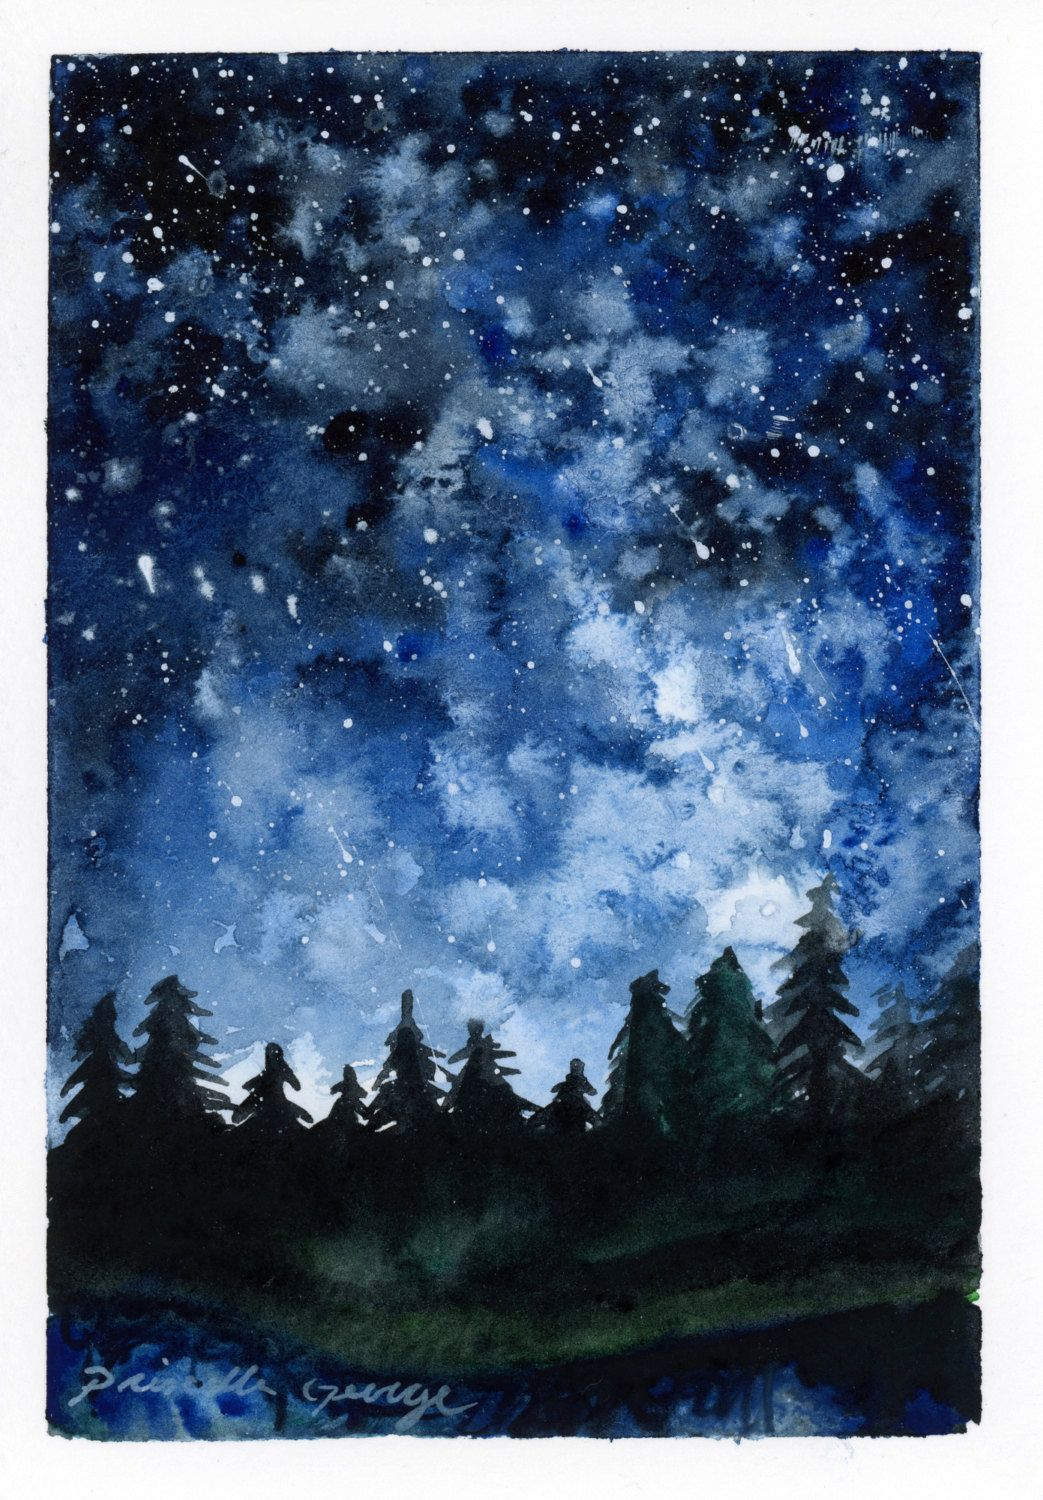 New To Priscillageorgeart On Etsy Forest Night Watercolor